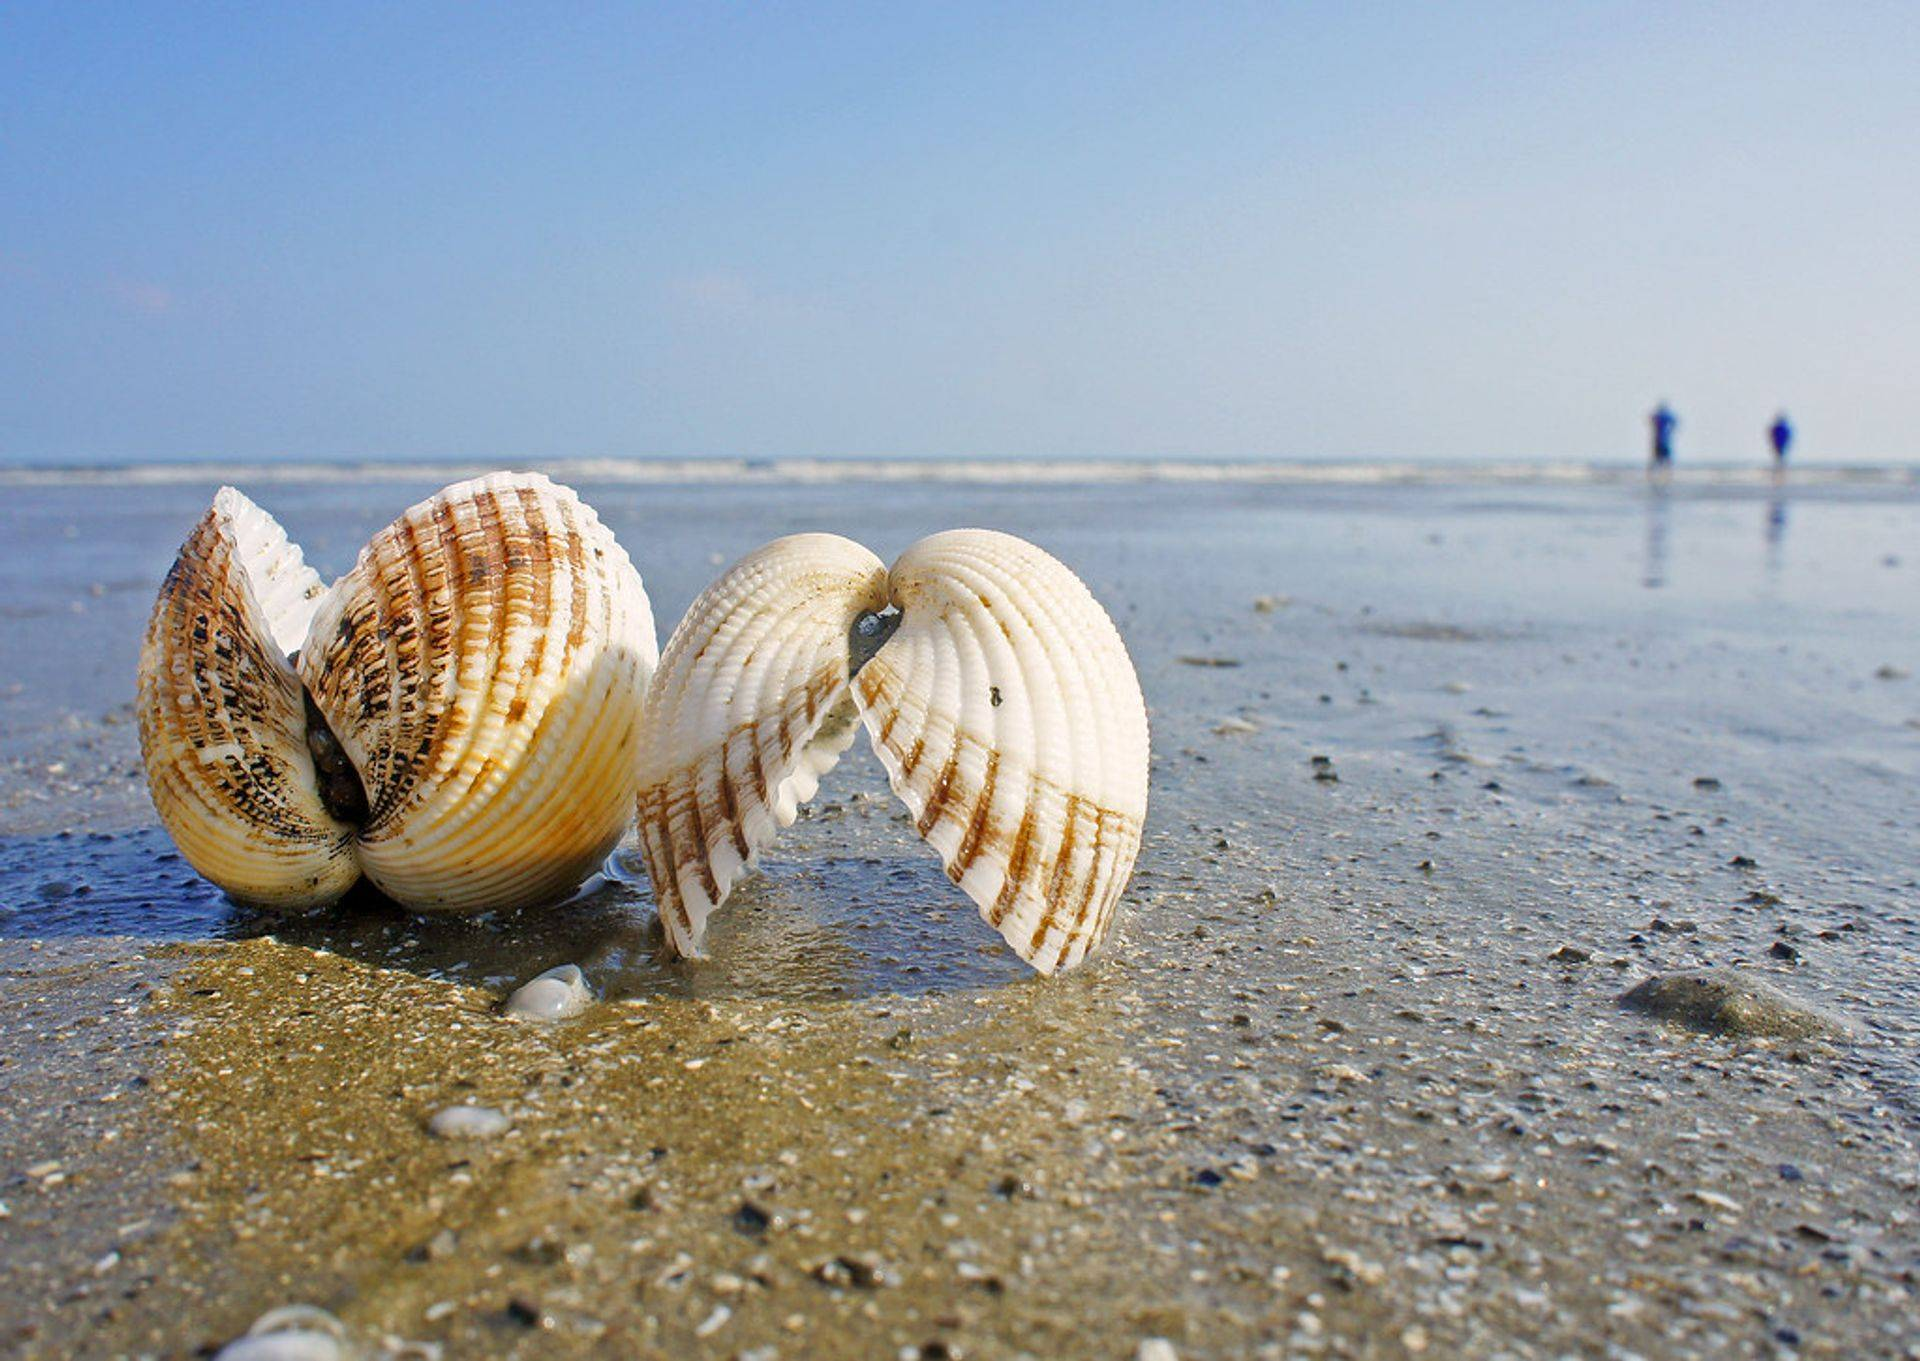 SHELLING CRUISE WITH SEA STAR SAILING